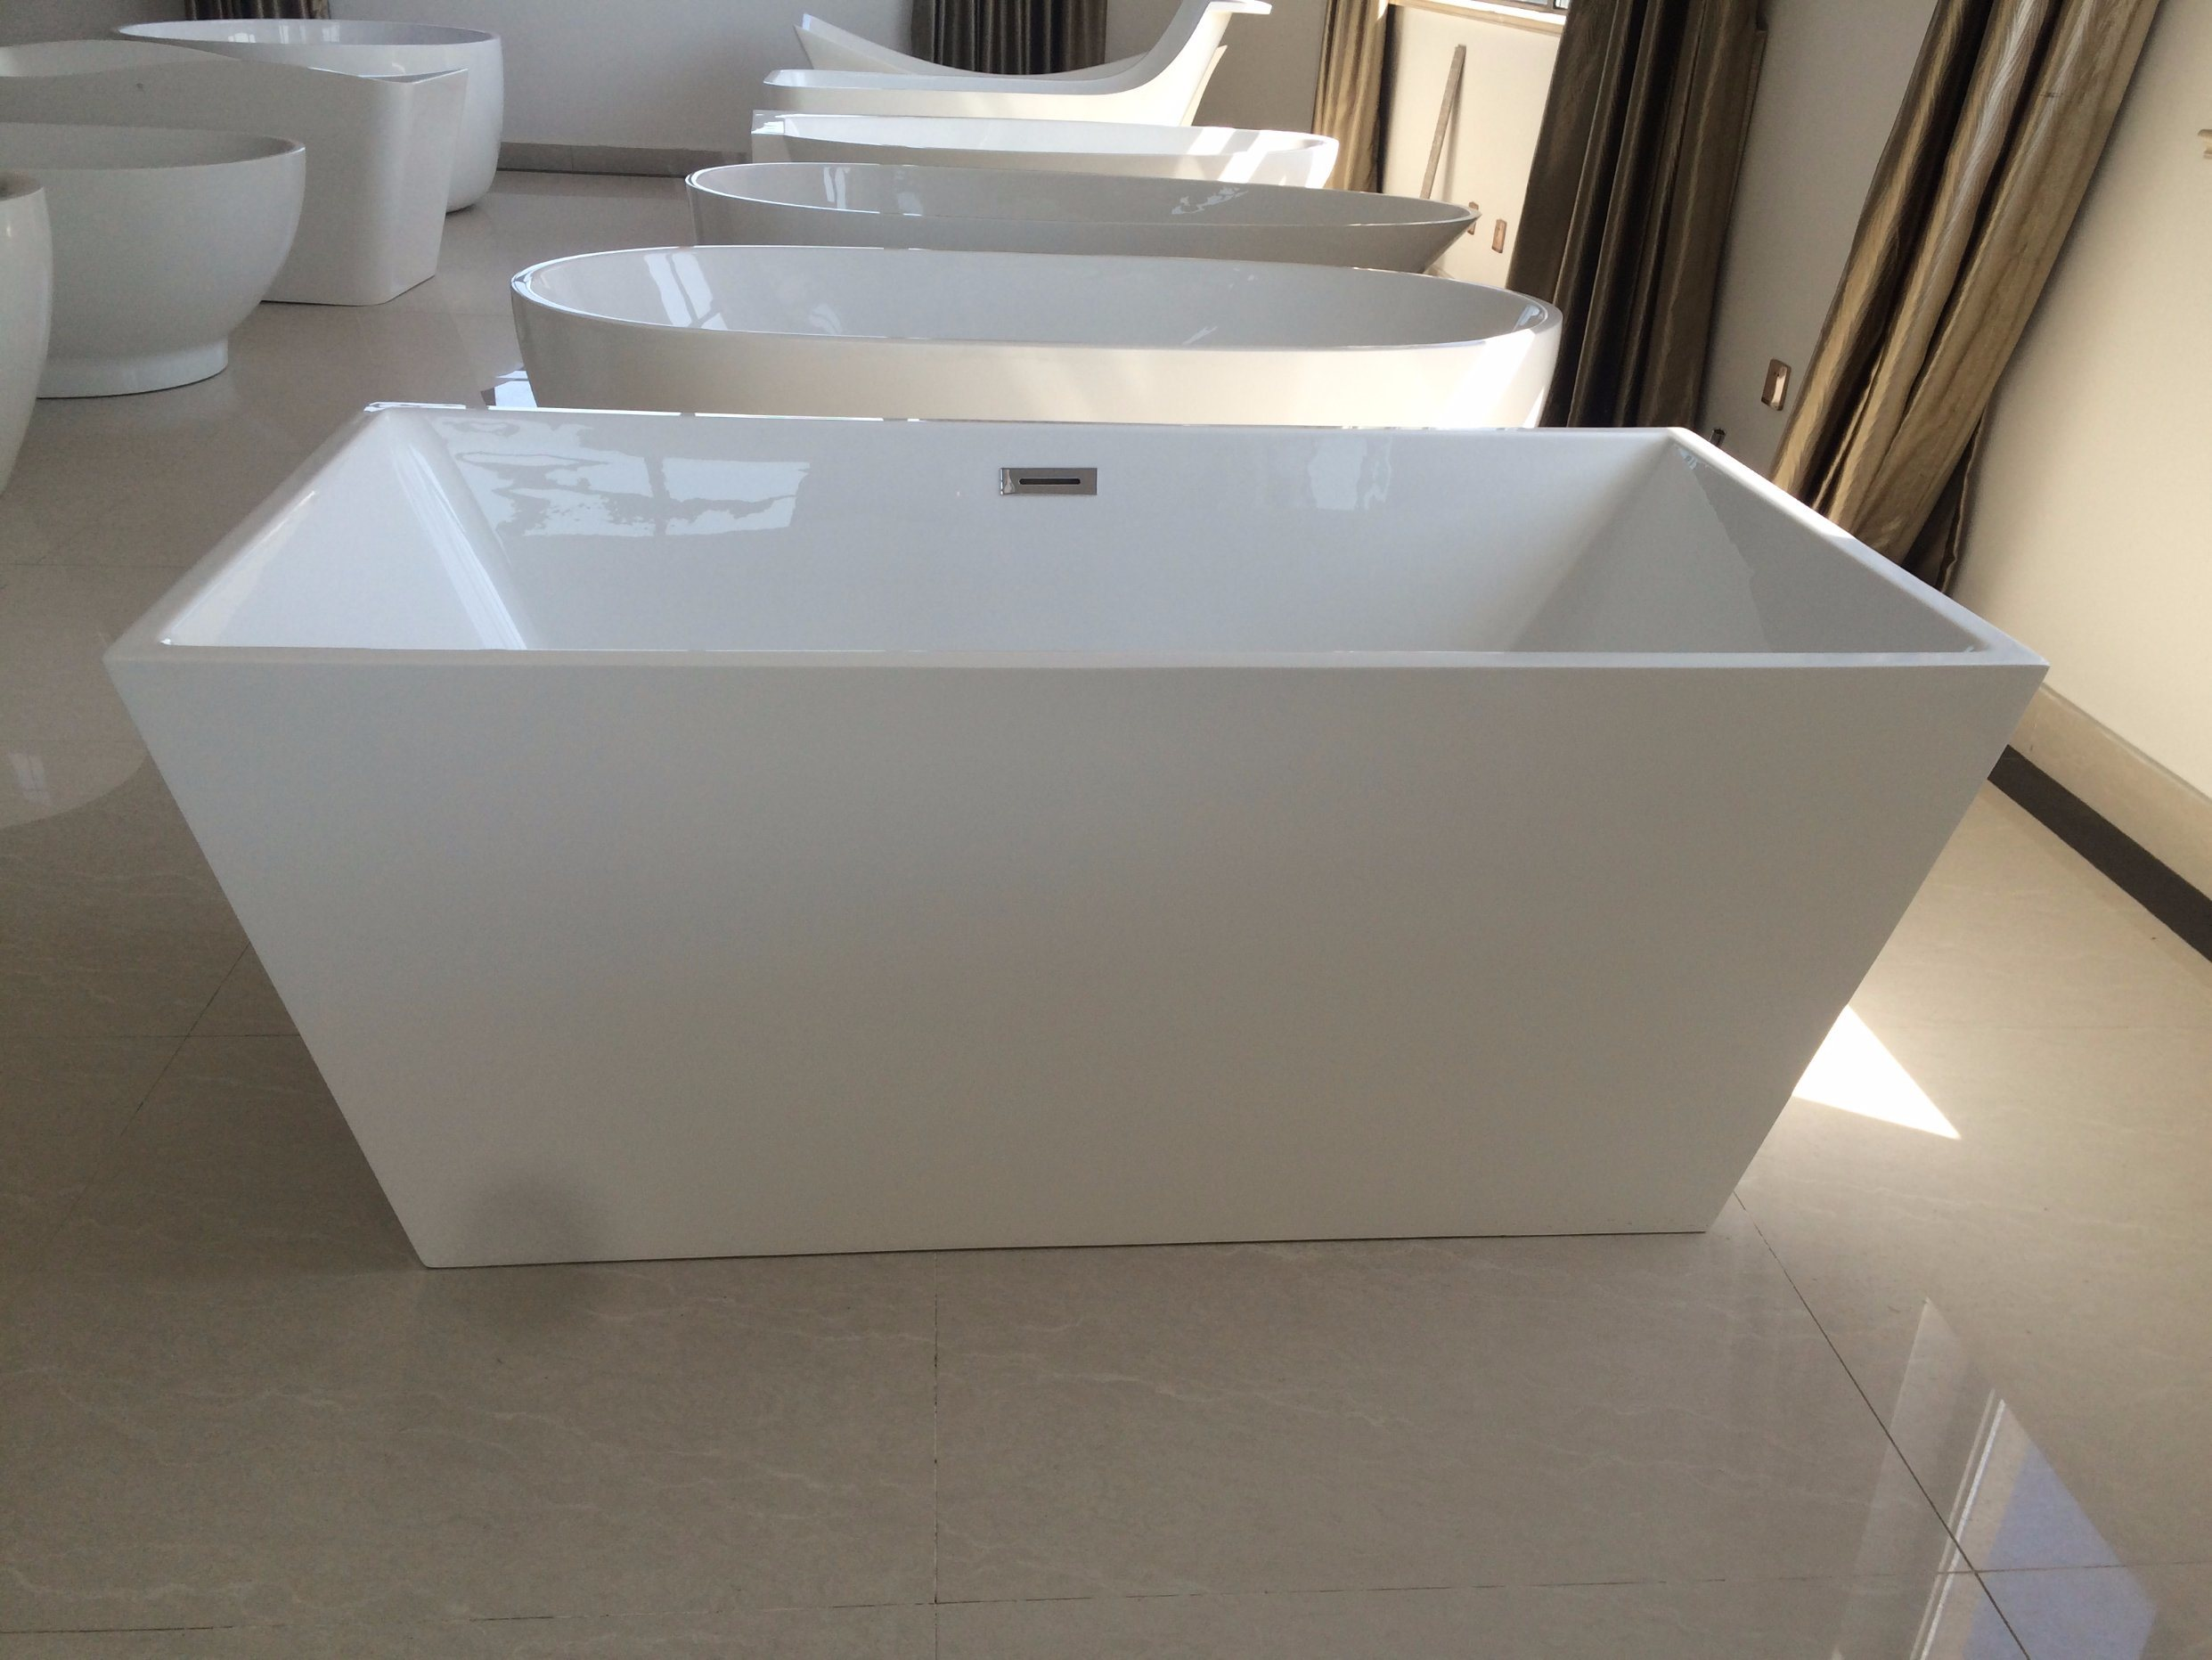 Square Acrylic Freestanding Baths Similar To Stone Resin Bathtub